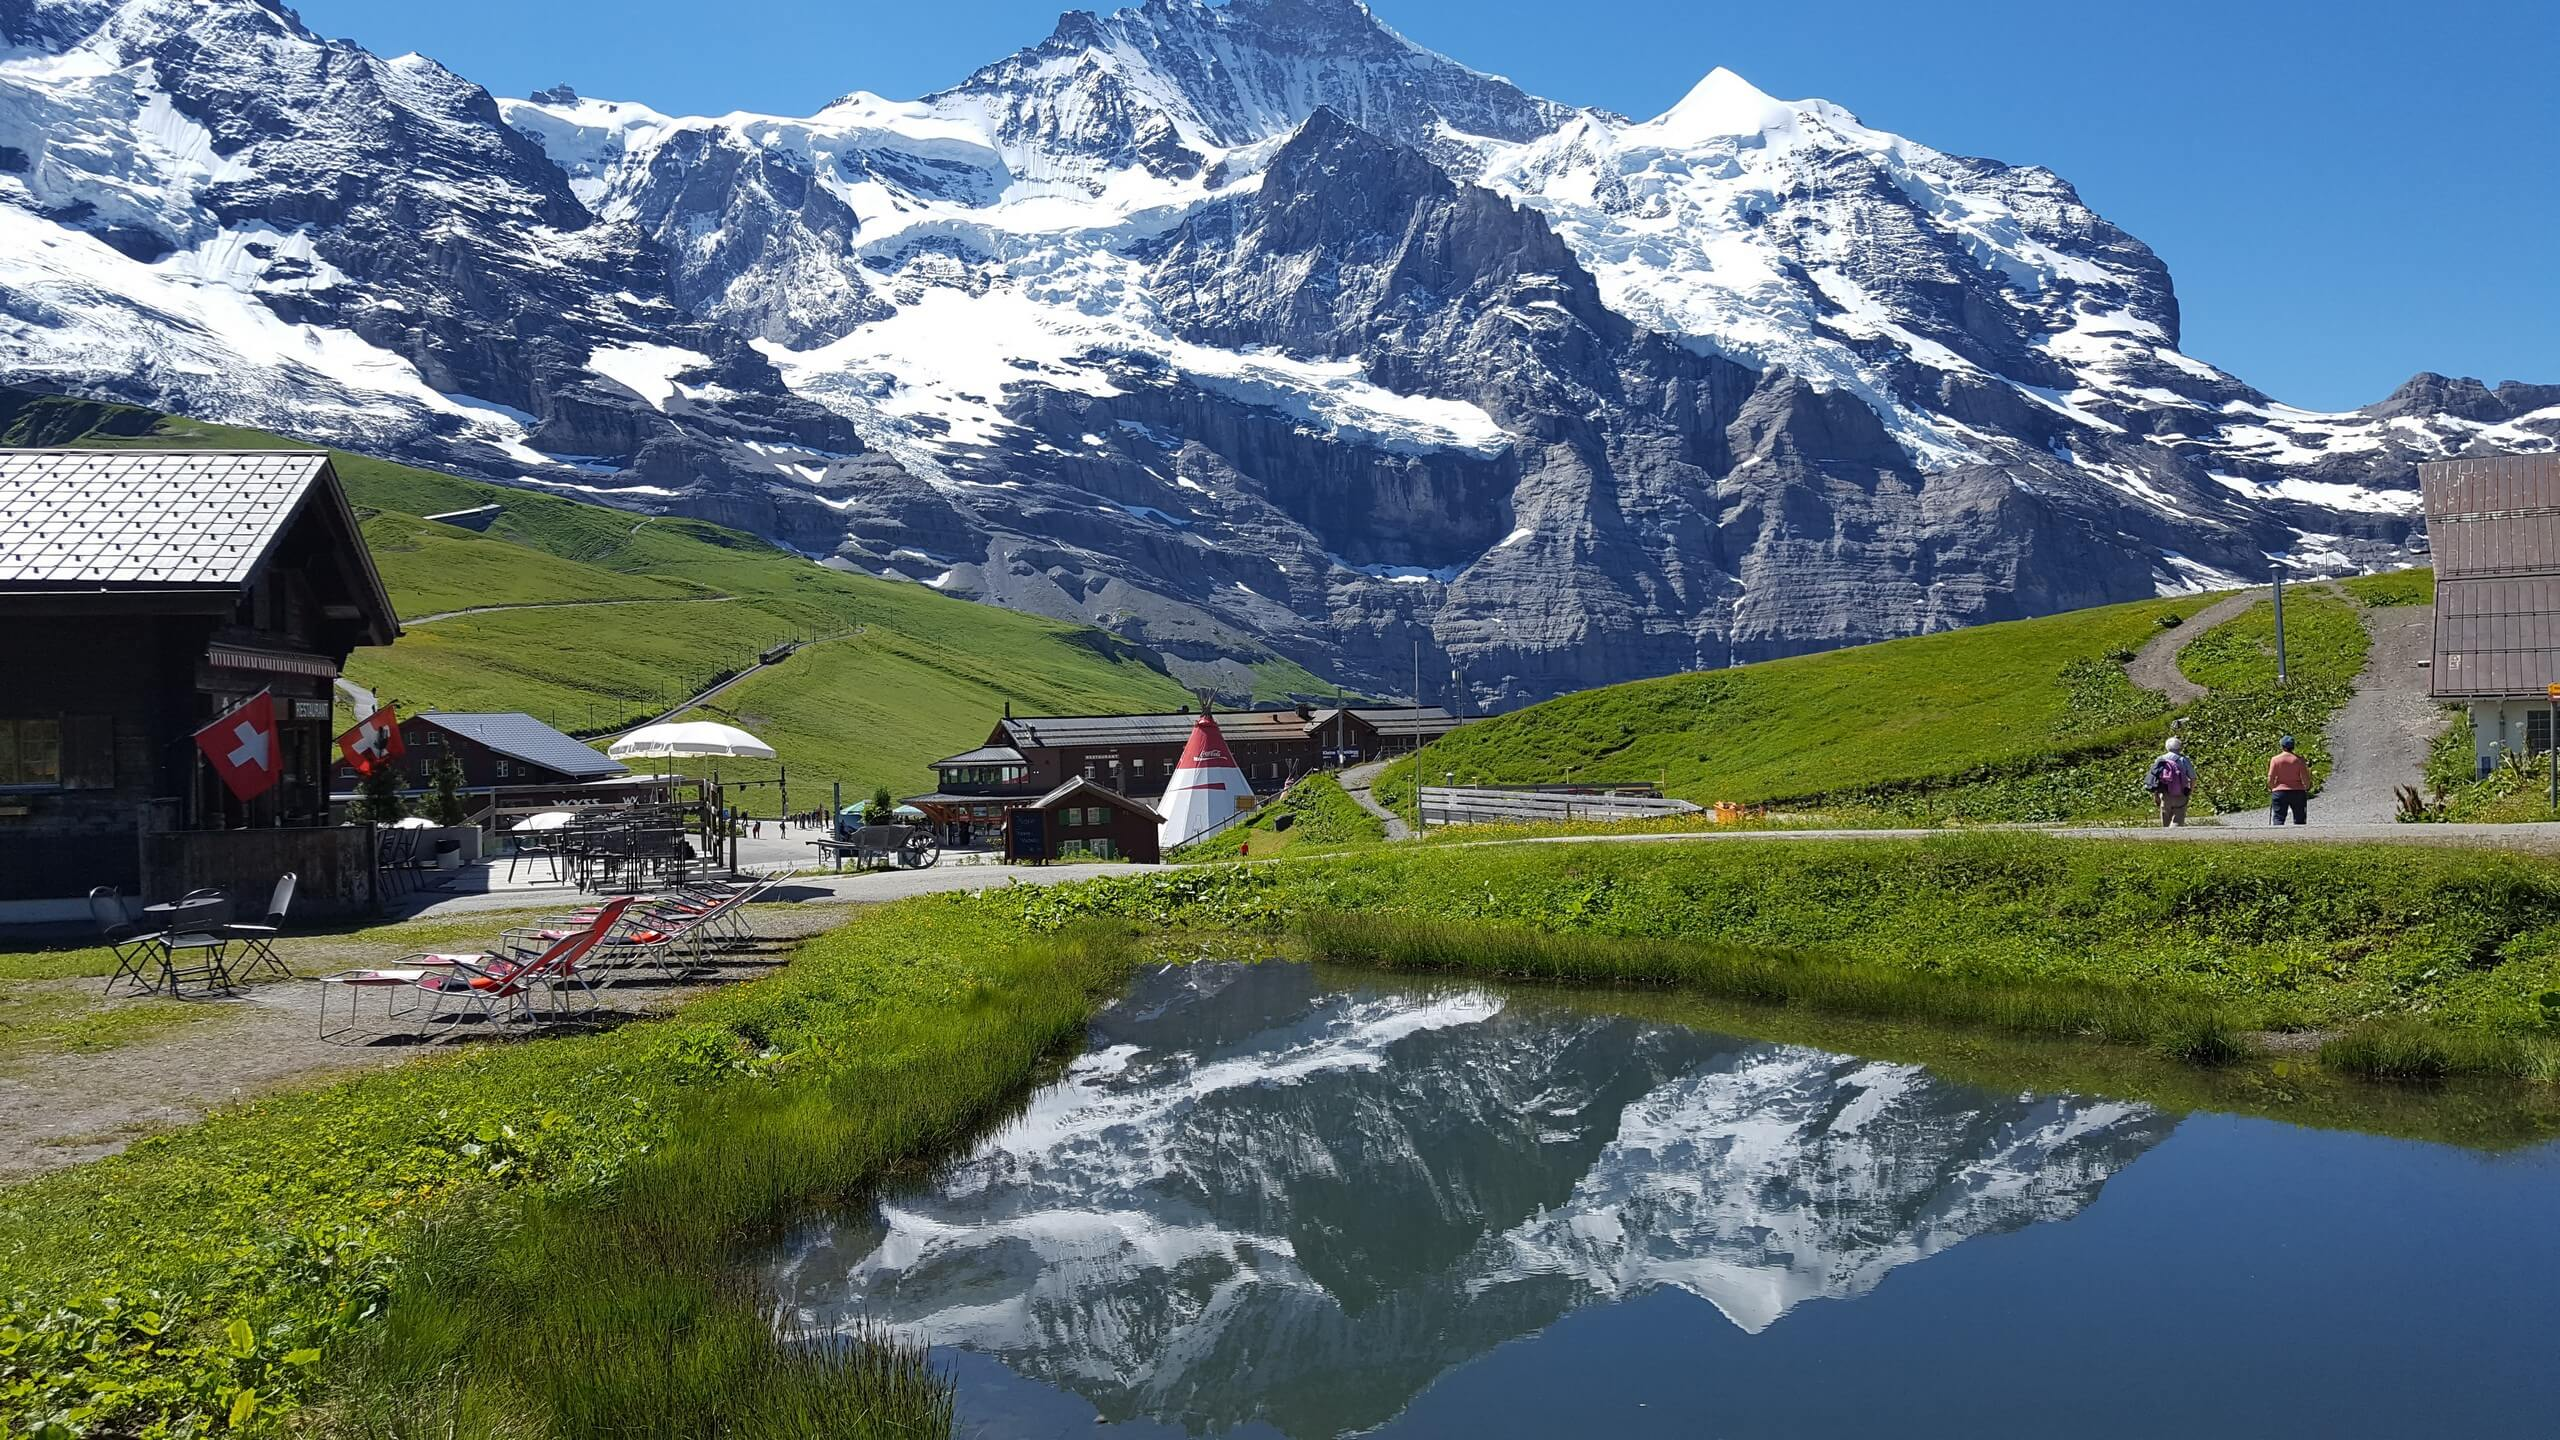 interlaken-privatetour-pure-switzerland-berge